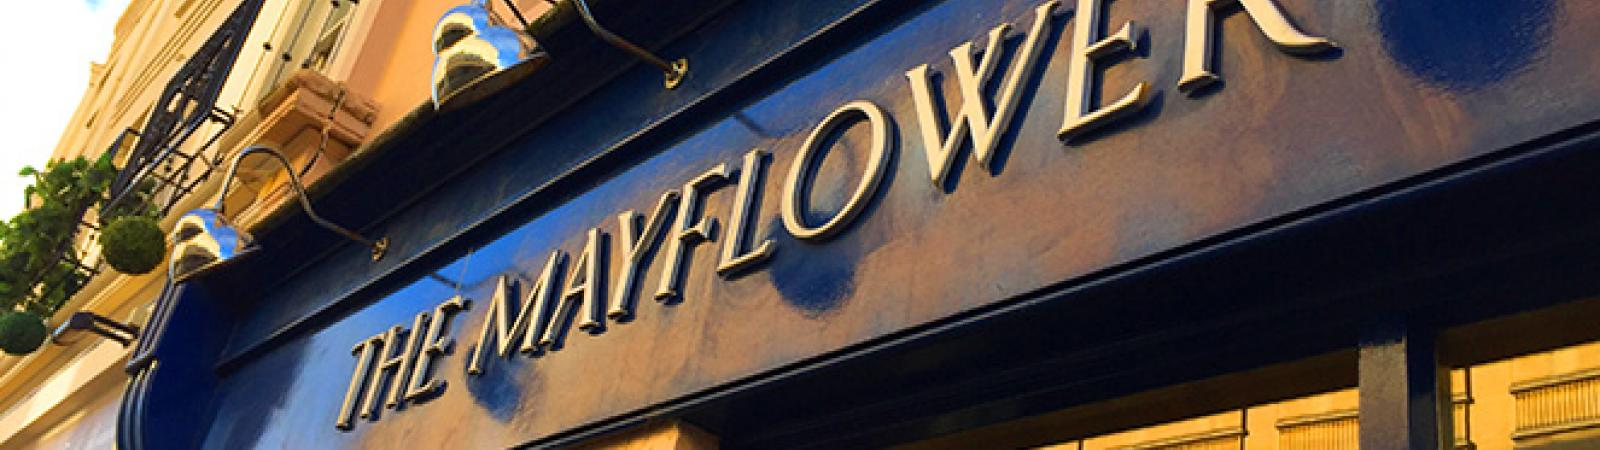 THE MAYFLOWER on Cheltenham Night Out | Promoting Cheltenham's nightlife for a great night out in Cheltenham.